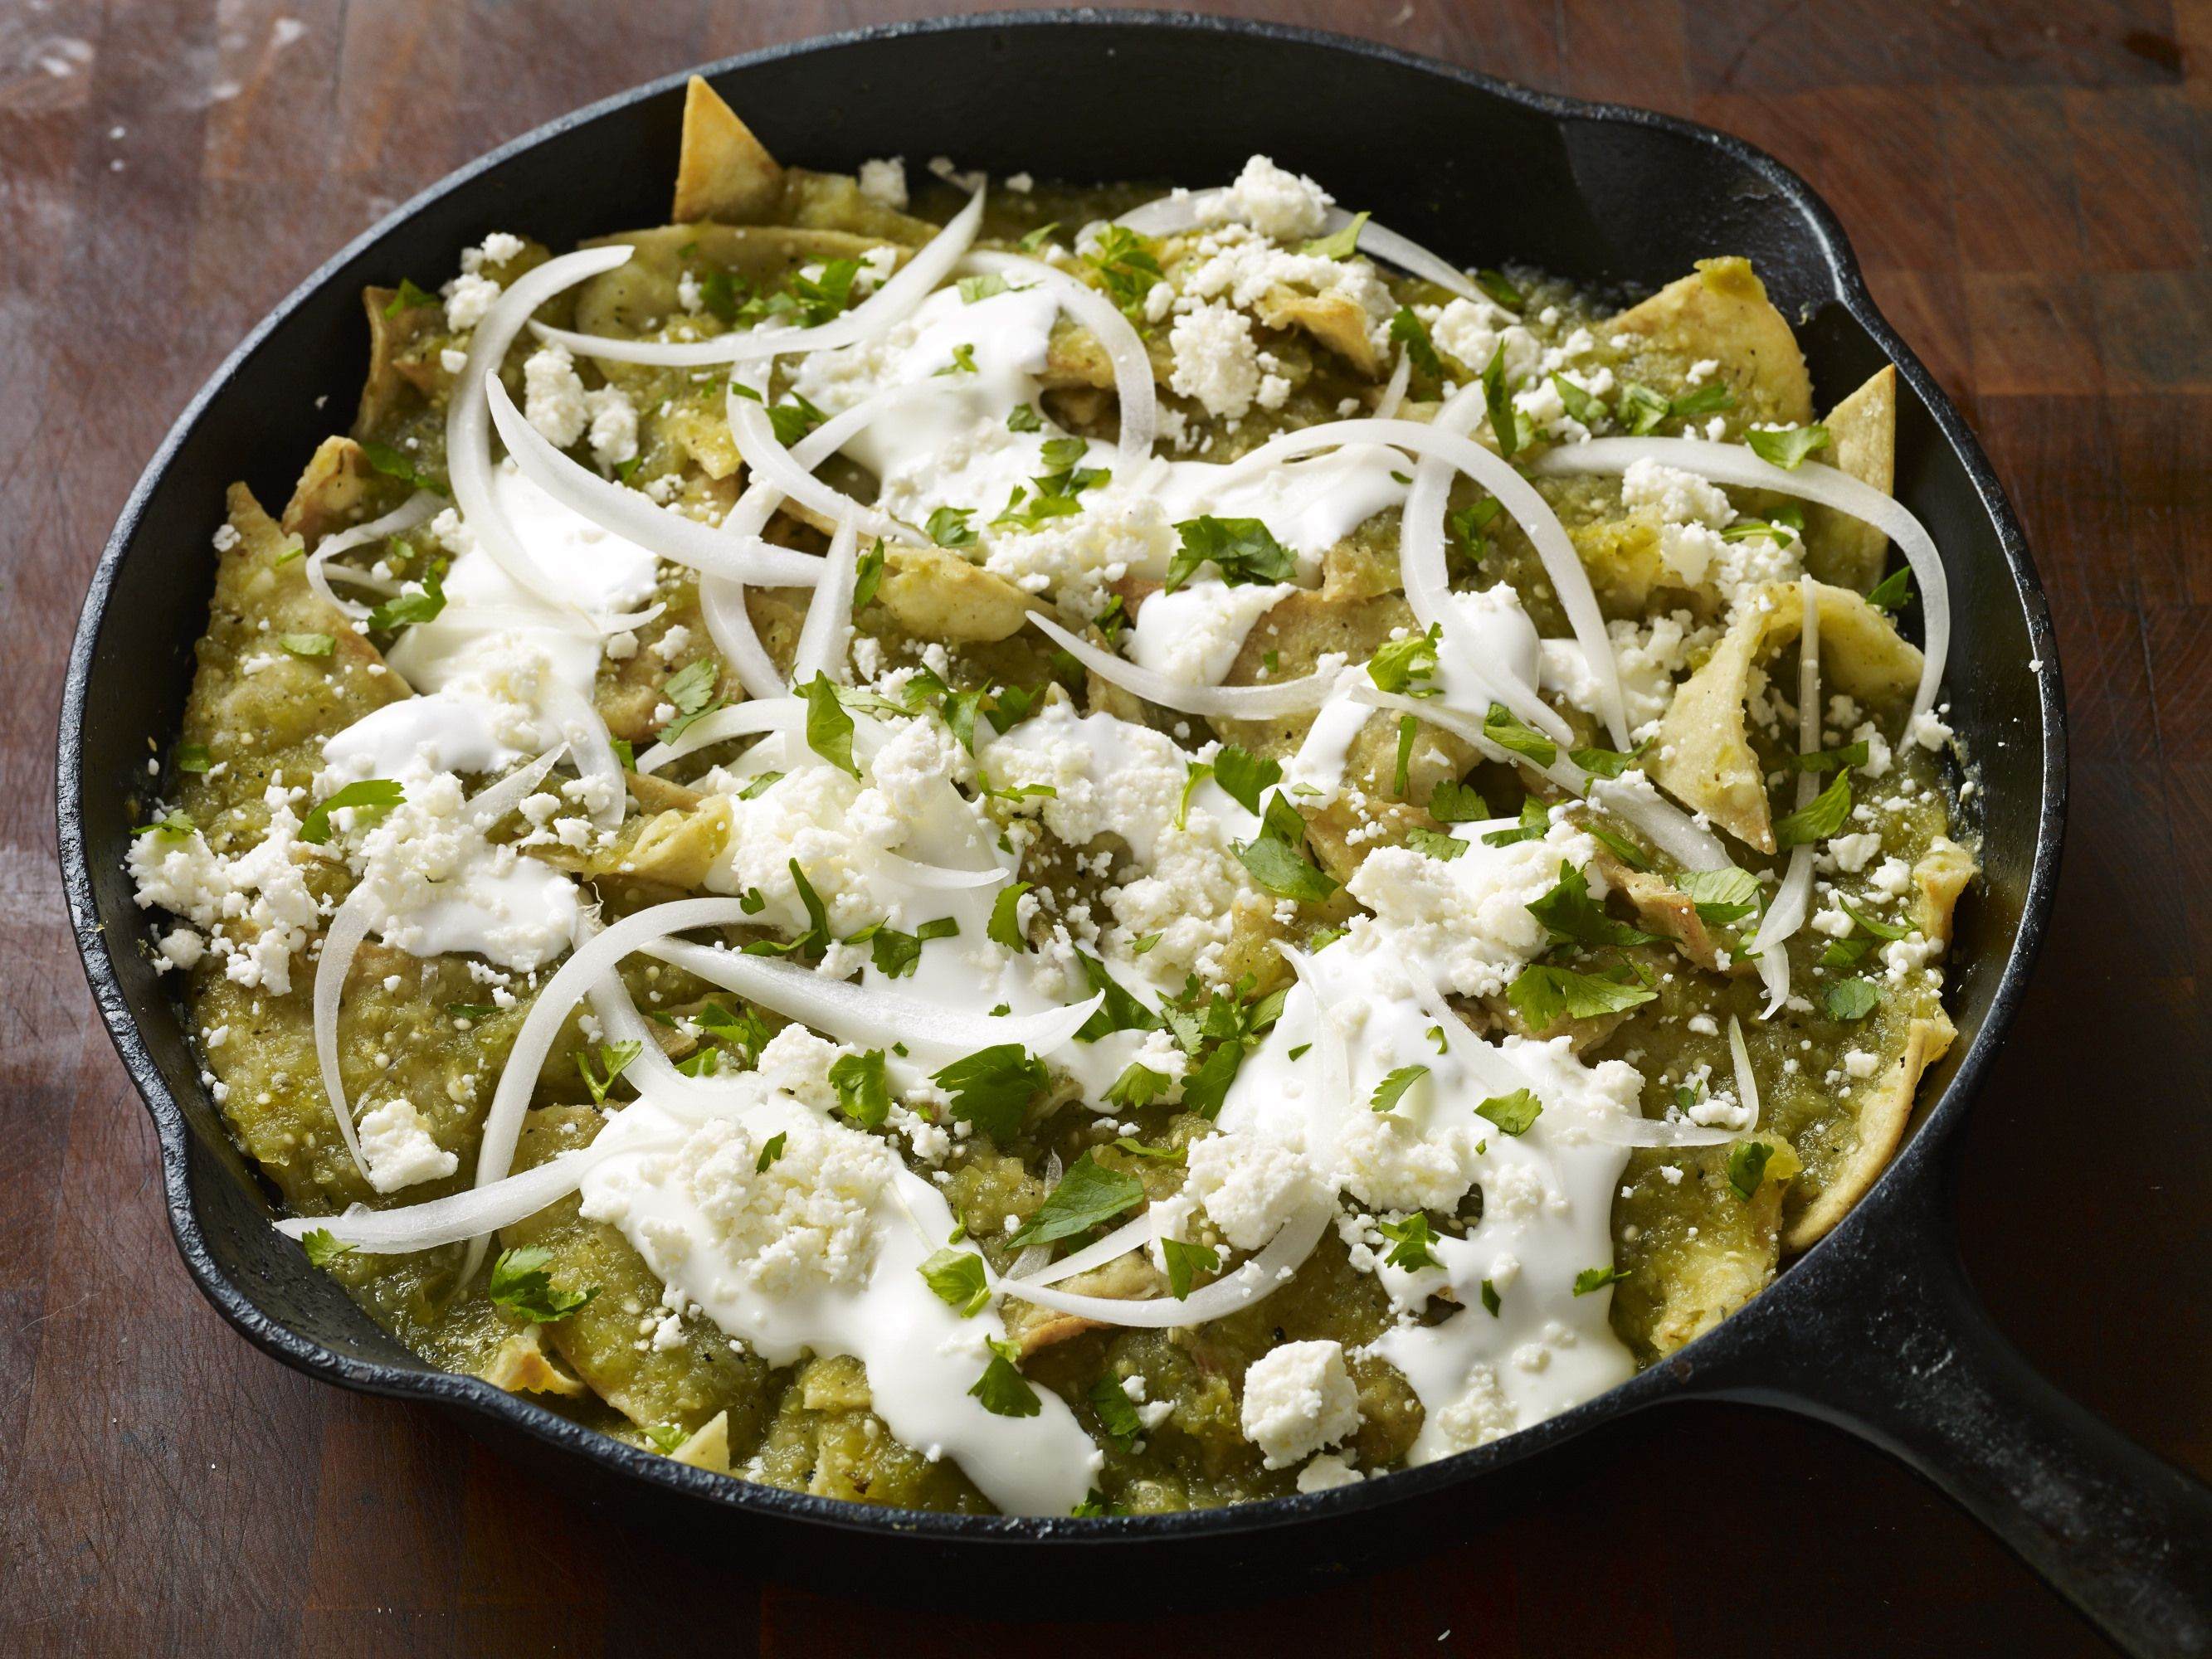 Green Chilaquiles in Roasted Tomatillo Sauce